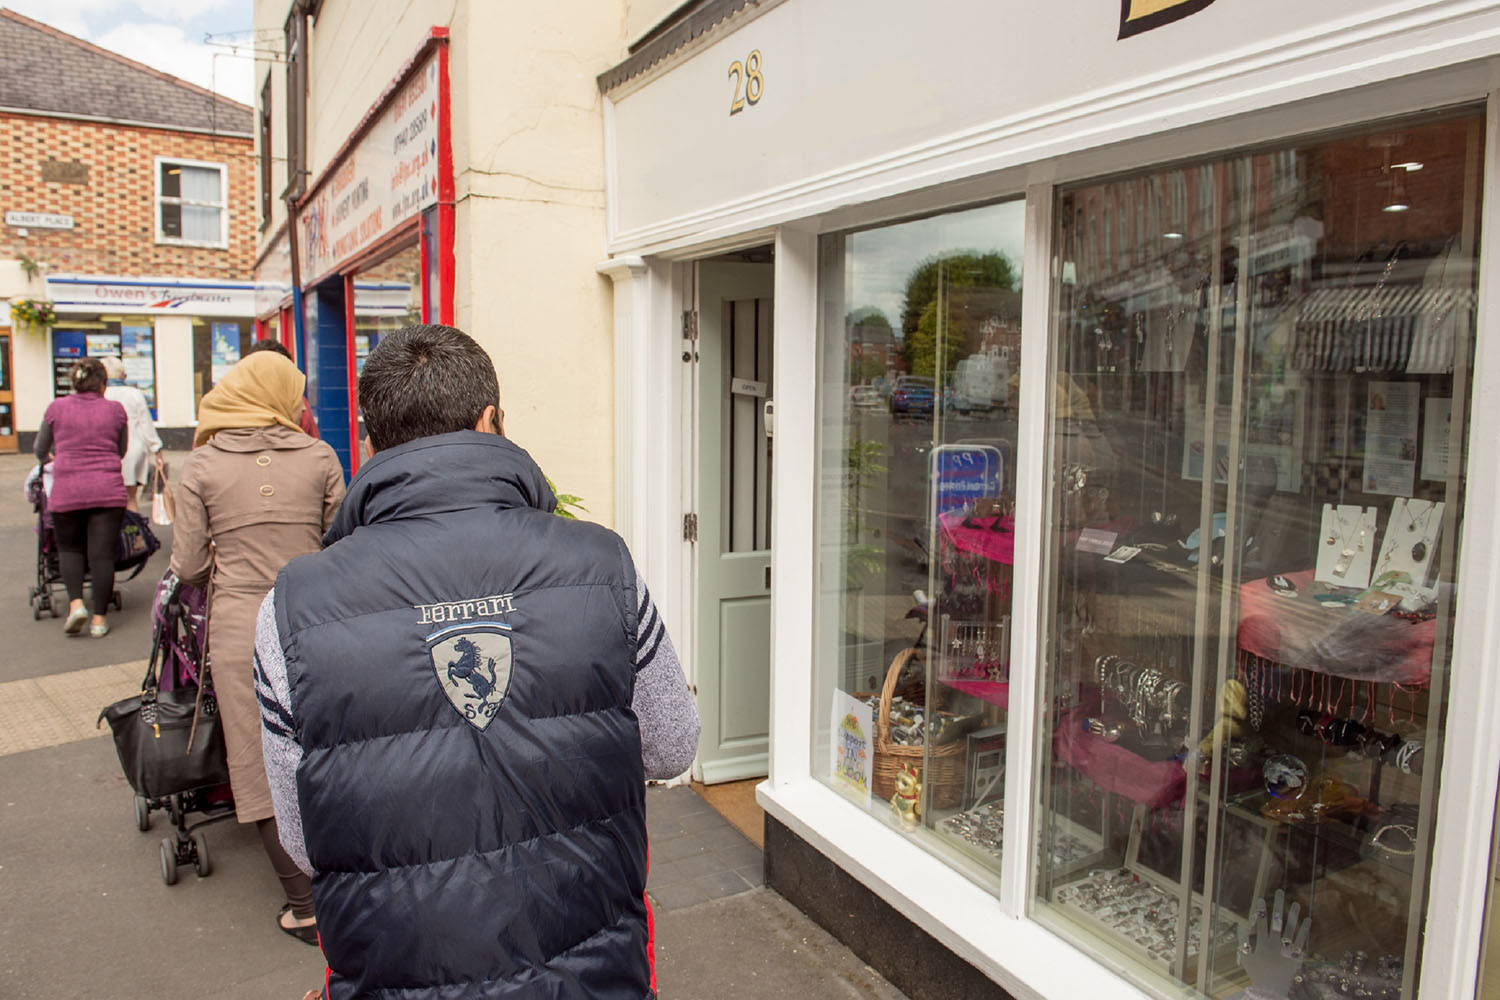 A Syrian refugee family walks past a shop window in an English town. The wife is pushing a young child in a pushchair.